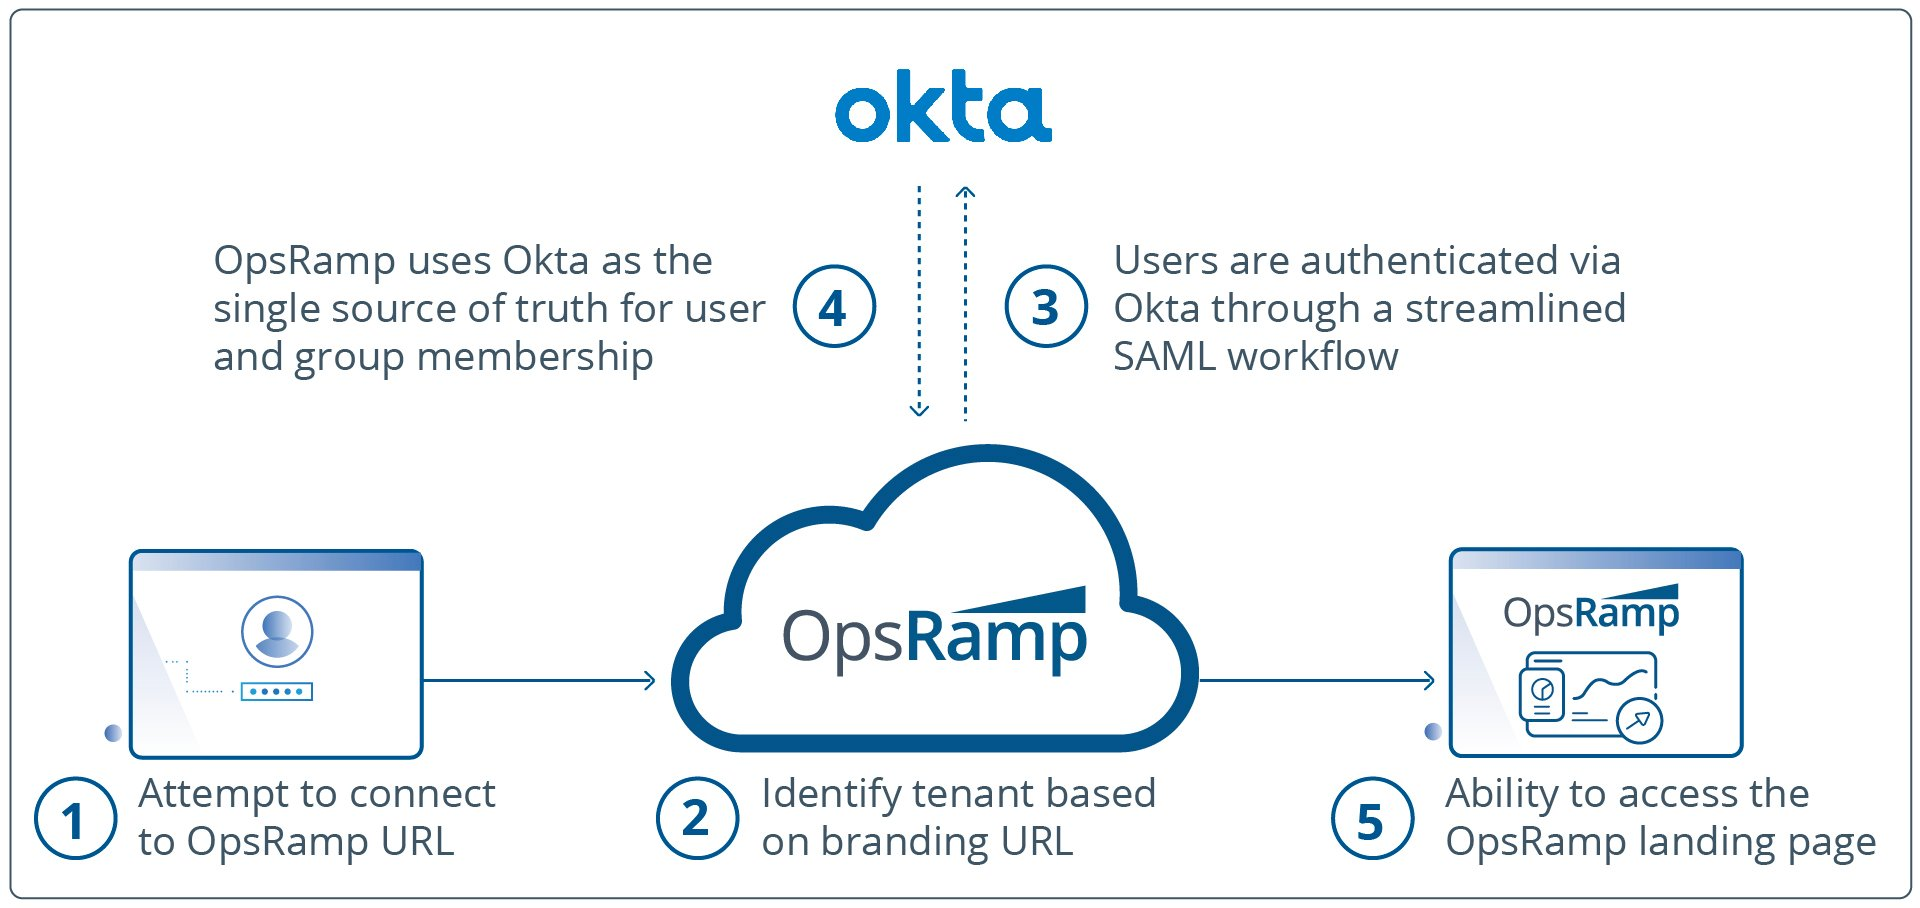 OpsRamp-Okta-Authentication